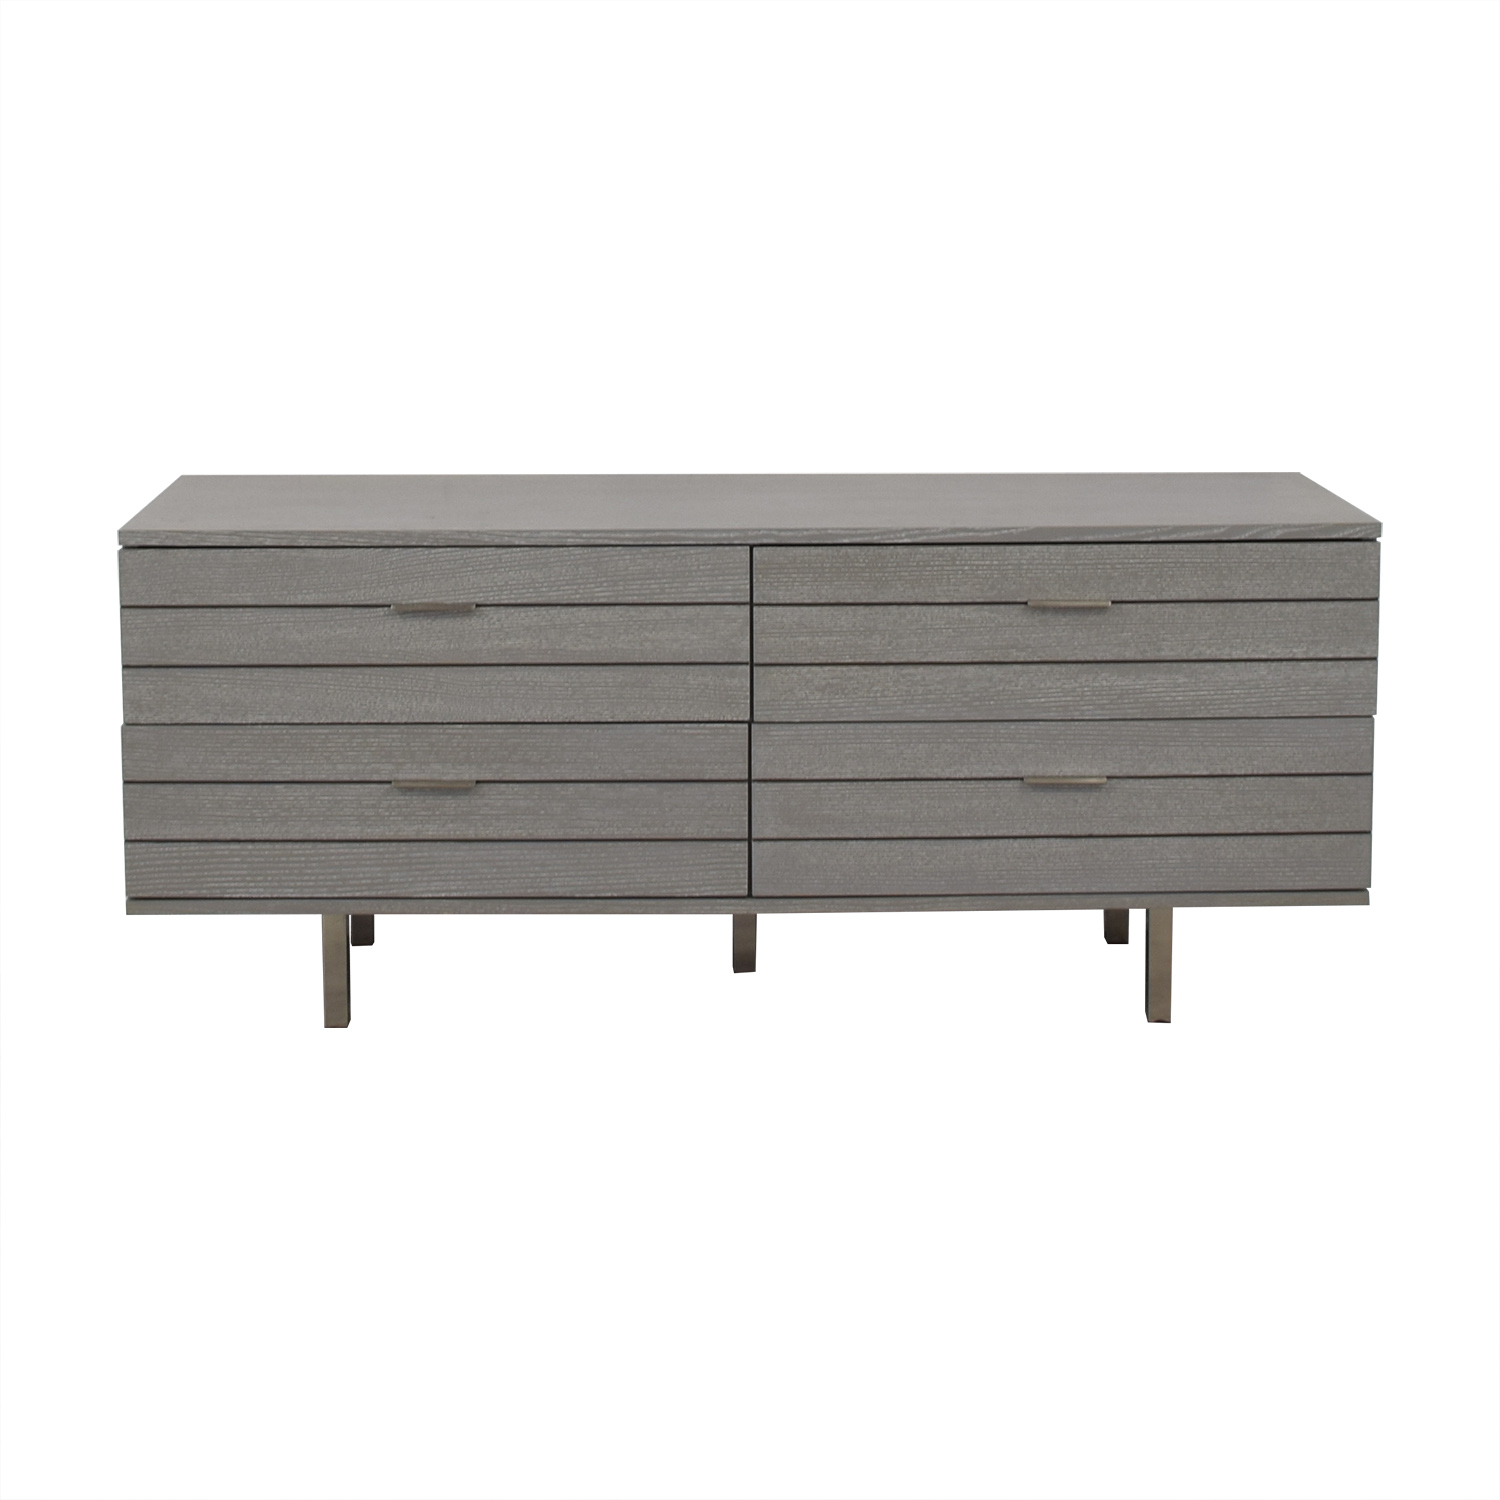 CB2 CB2 Linear Low Dresser second hand